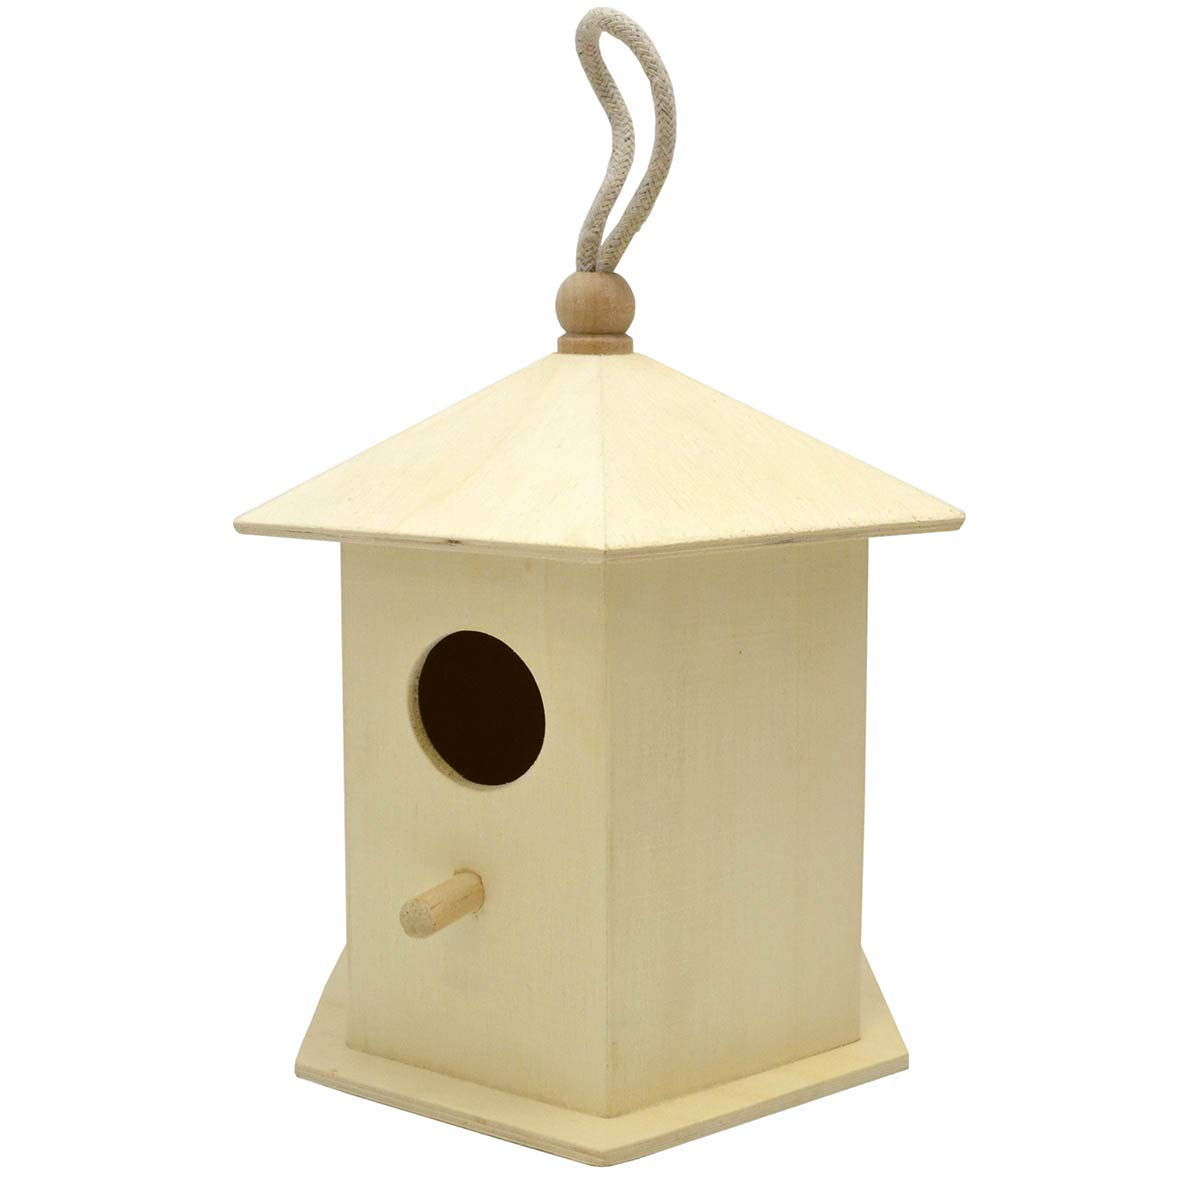 Tulip Laras Crafts Decorative Bird House Approximately 6 inches x 5 inches x 7 inches